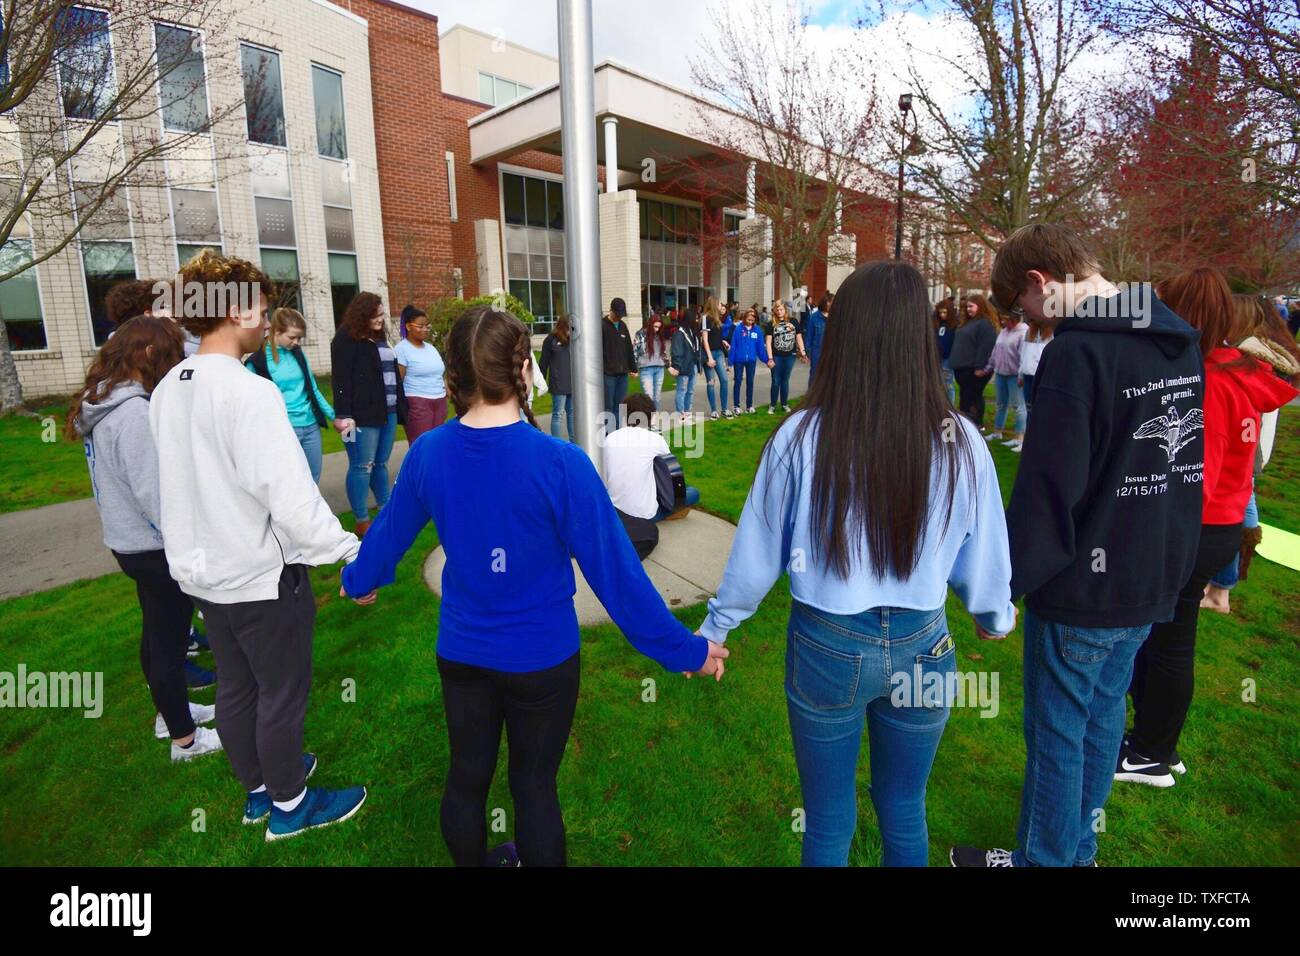 Grants Pass High School students participate in a prayer circle during a national walkout to honor Florida school shooting victims, in Grants Pass, Oregon, March 14, 2018. The youth-organized protest brought attention to school safety, protested gun violence, and honored the 17 victims of the shooting at Marjory Stoneman Douglas High School. Photo by David Tulis/UPI Stock Photo